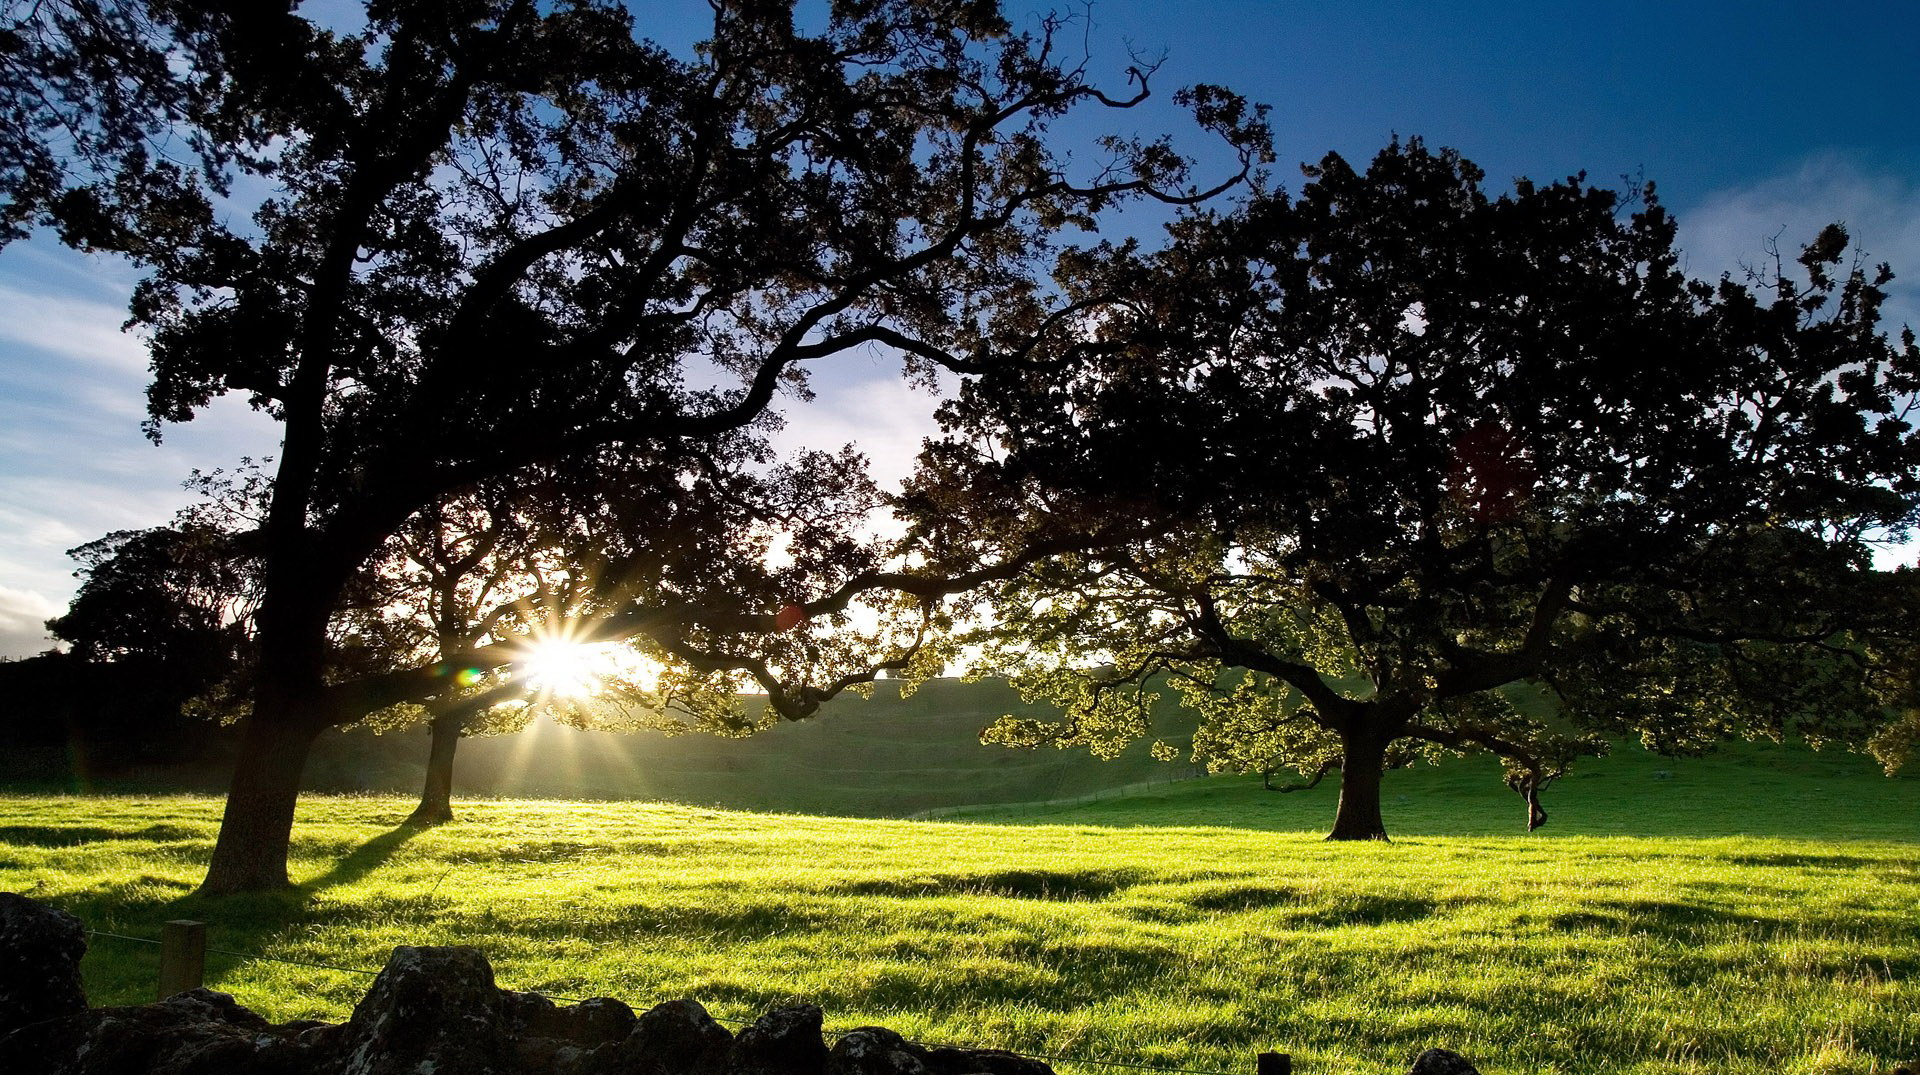 Free Download Natural Scenery Picture - The Rising Sun Generating Light on Tall Trees and Green Grass, It is Generous 1920X1080 free wallpaper download